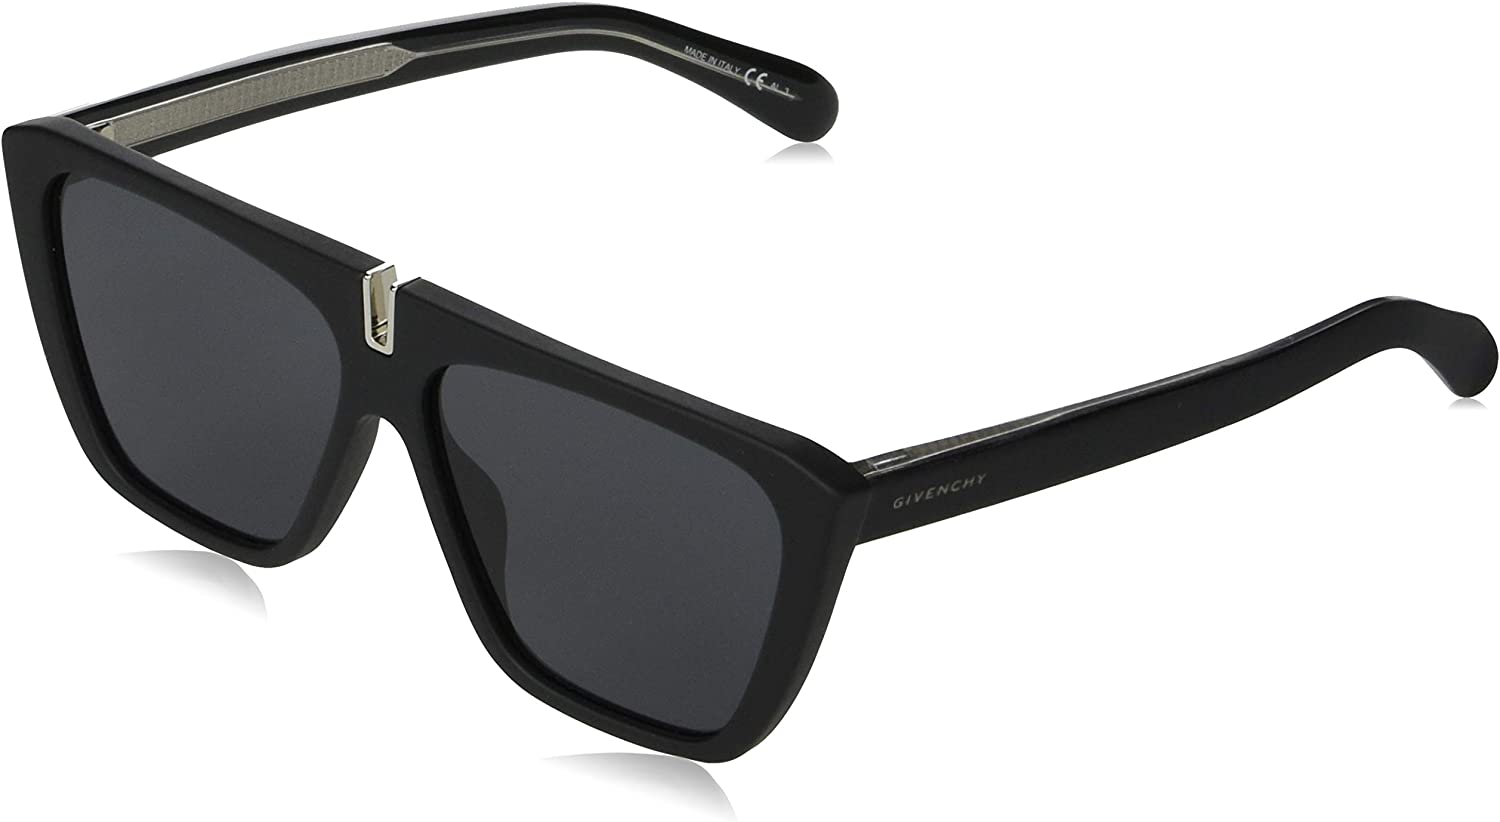 Sunglasses GIVENCHY GV 7109/S 807 at lux-store.com US